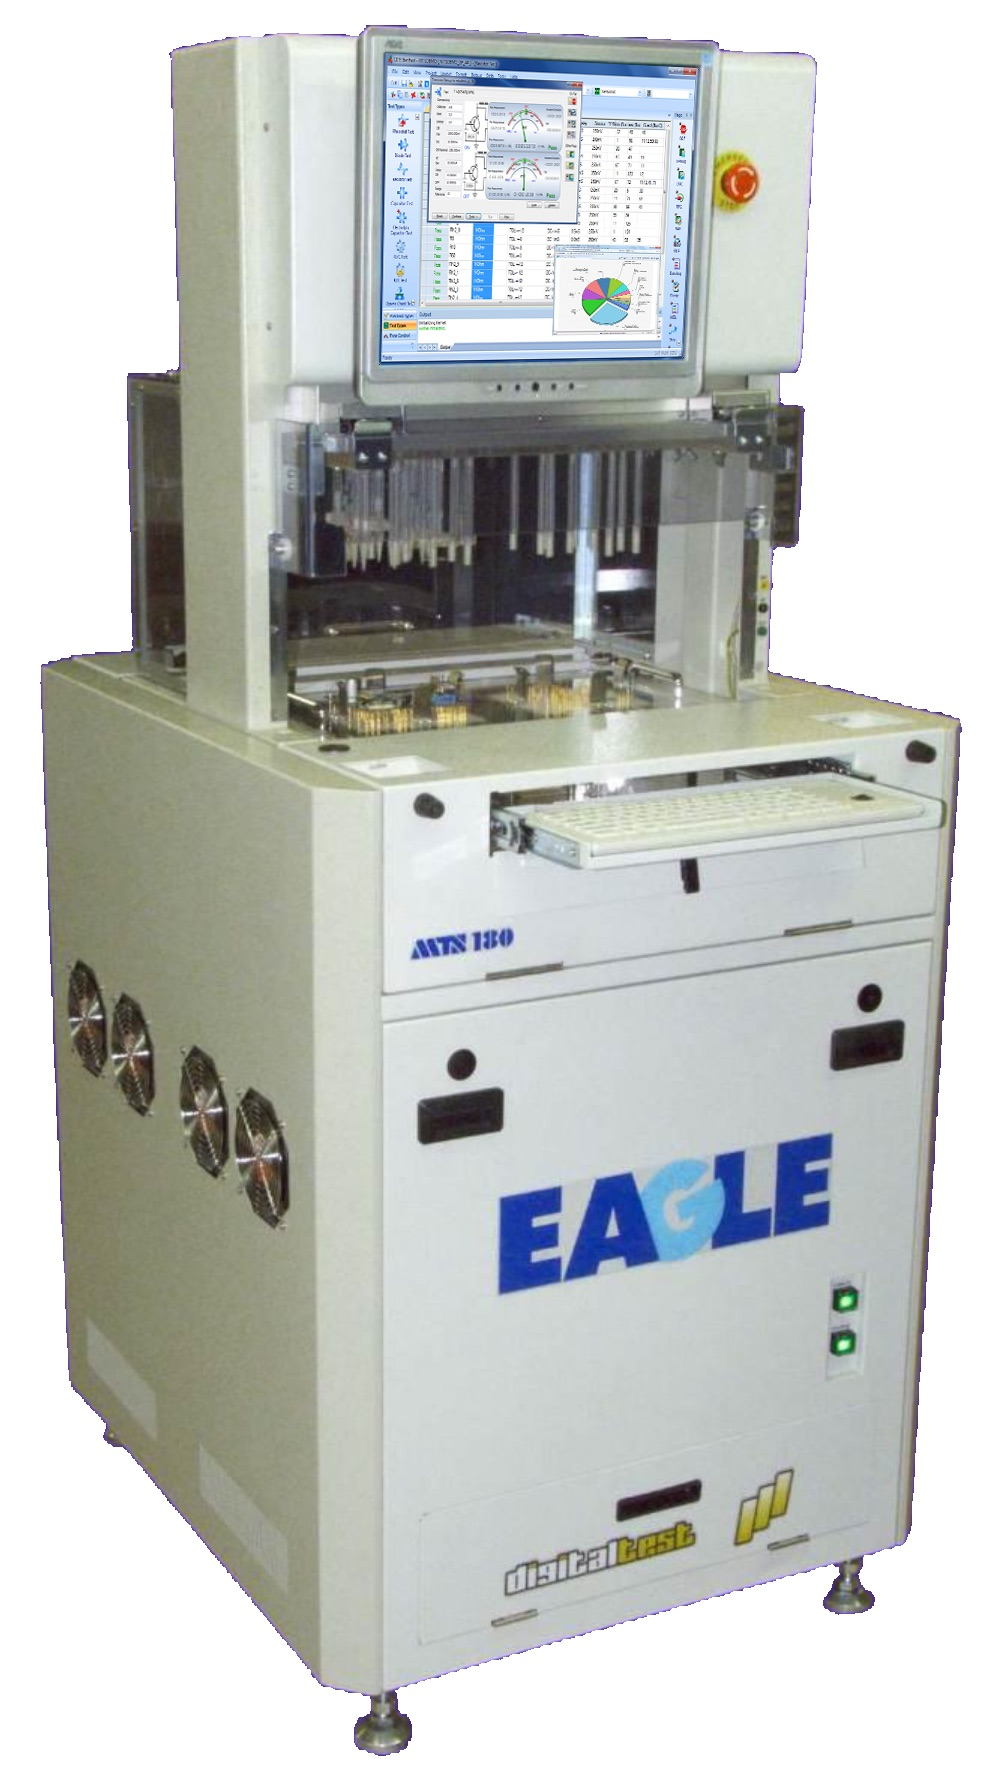 MTS 180 Eagle - ICT Test System with Low Cost Fixturing Solution